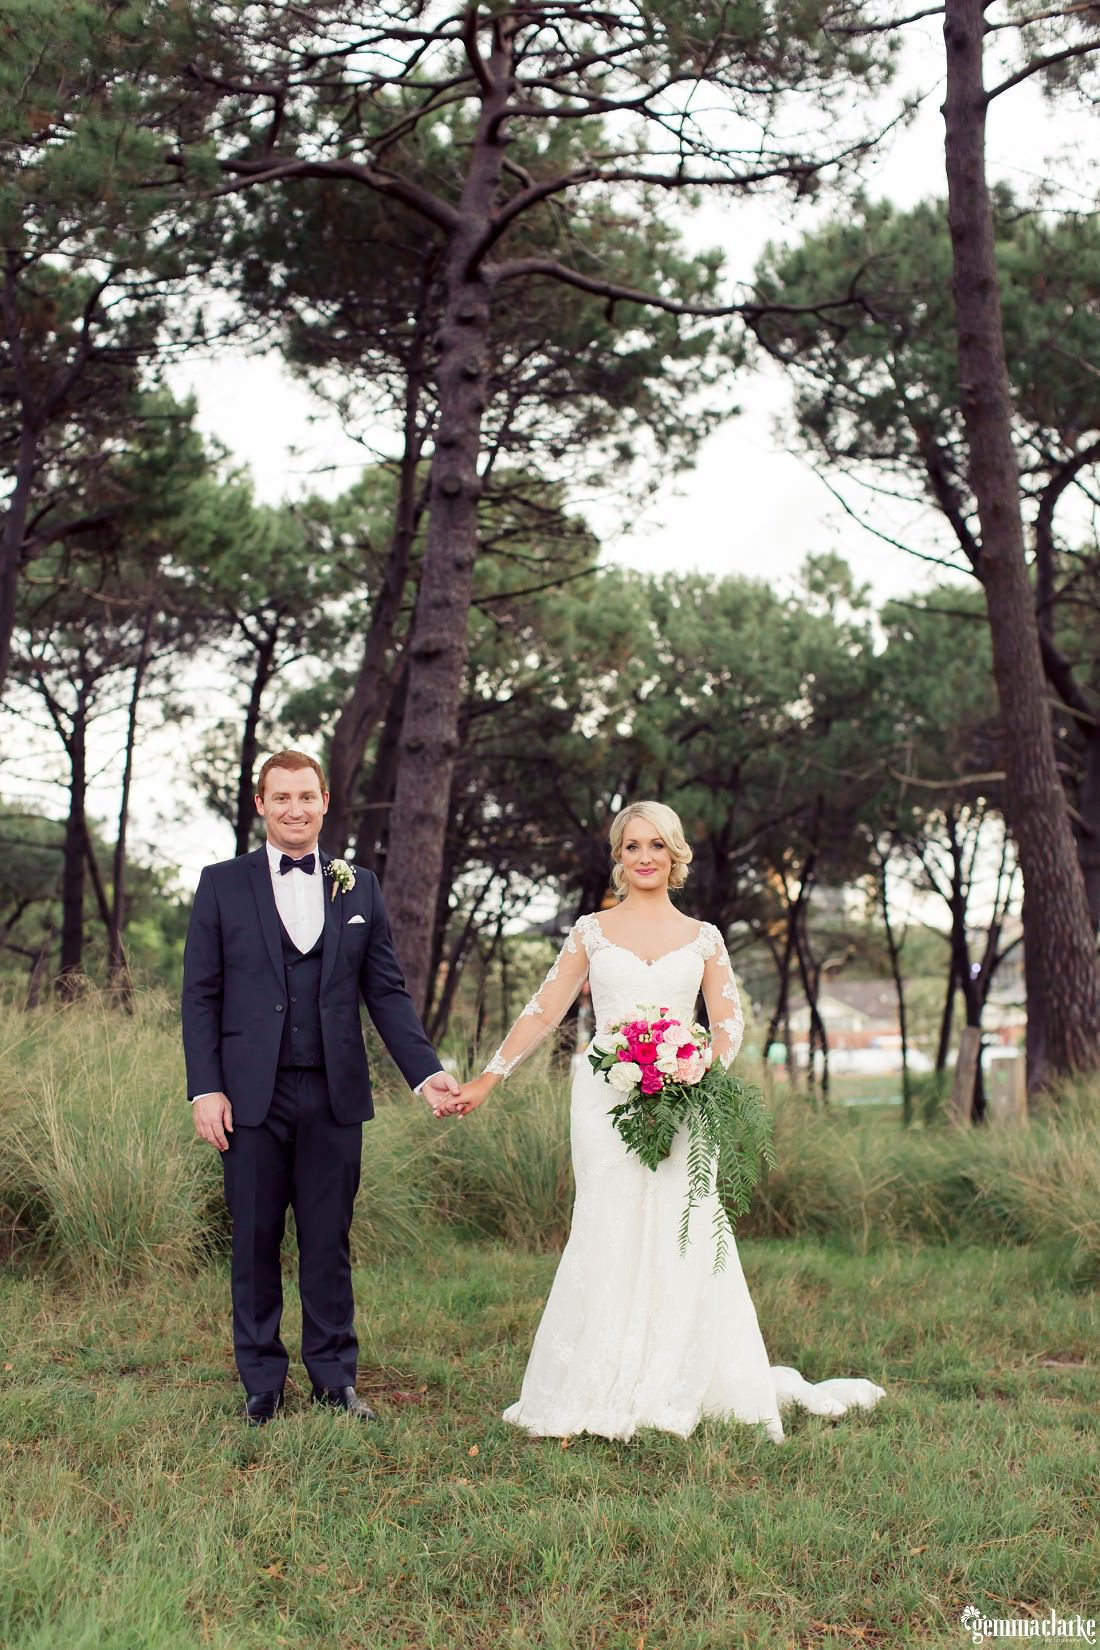 A bride and groom smile and hold hands in a forest - Centennial Park Wedding